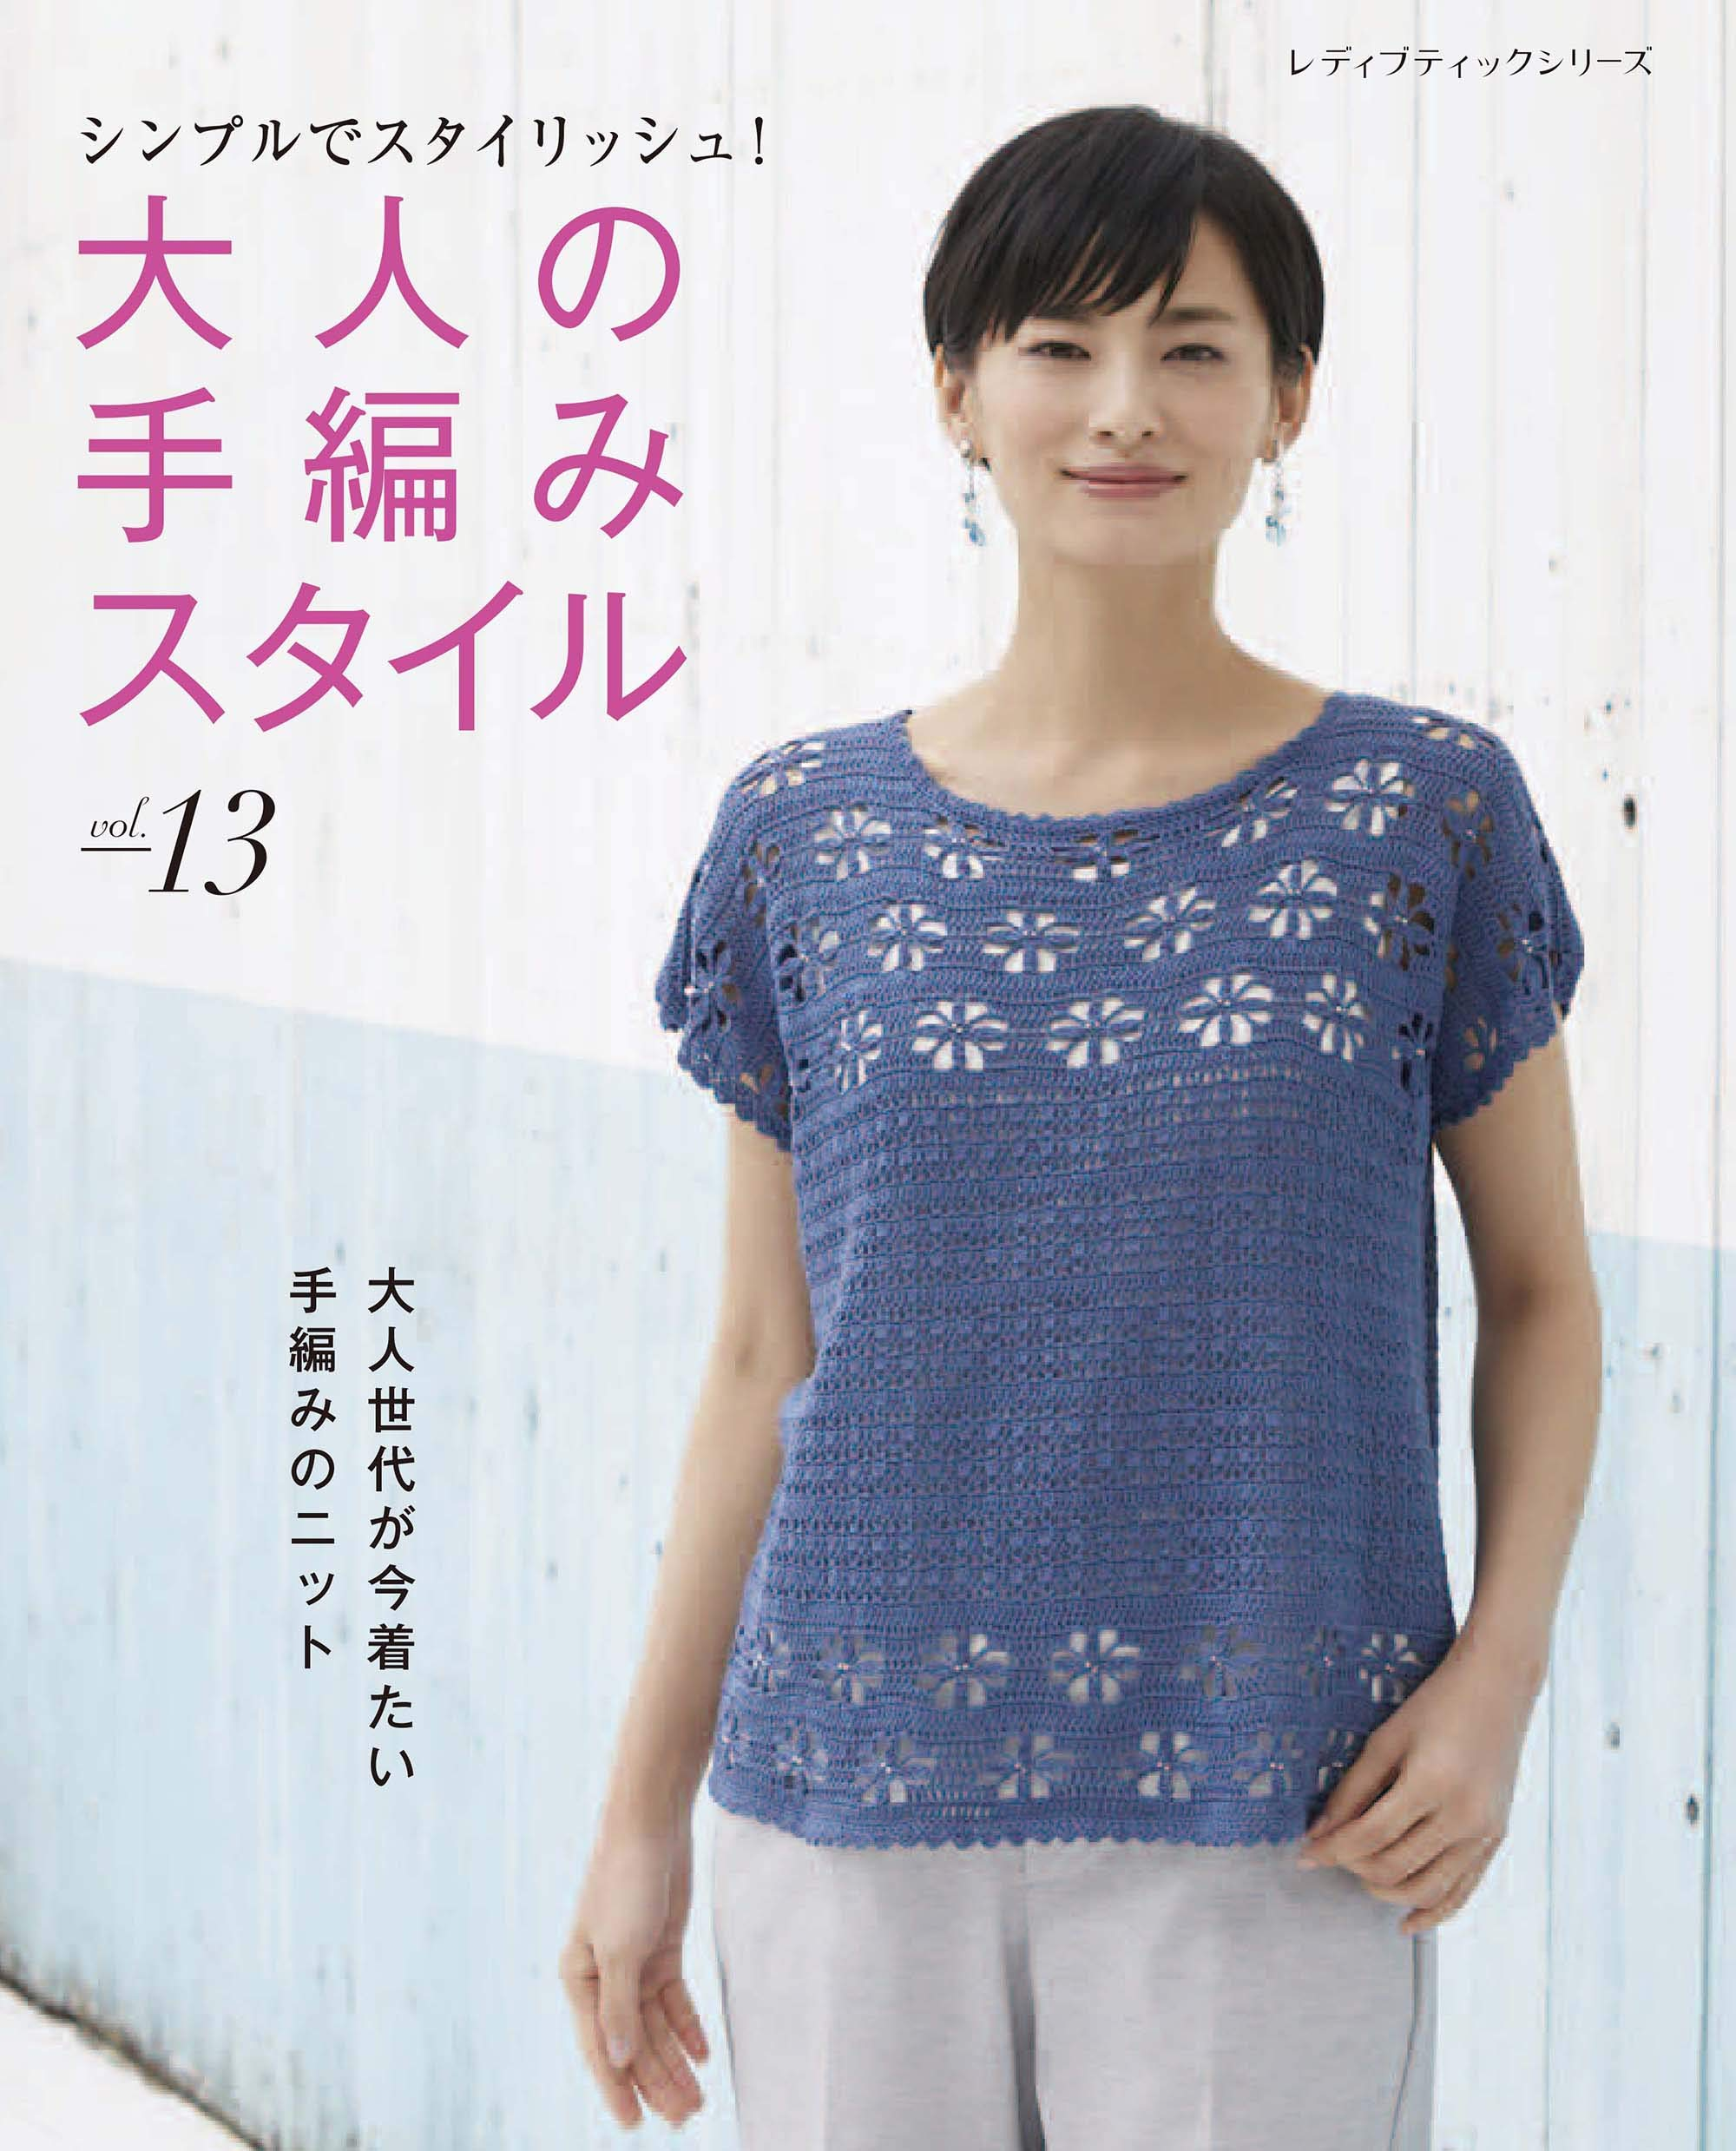 Adult Hand Knitting Style vol.13